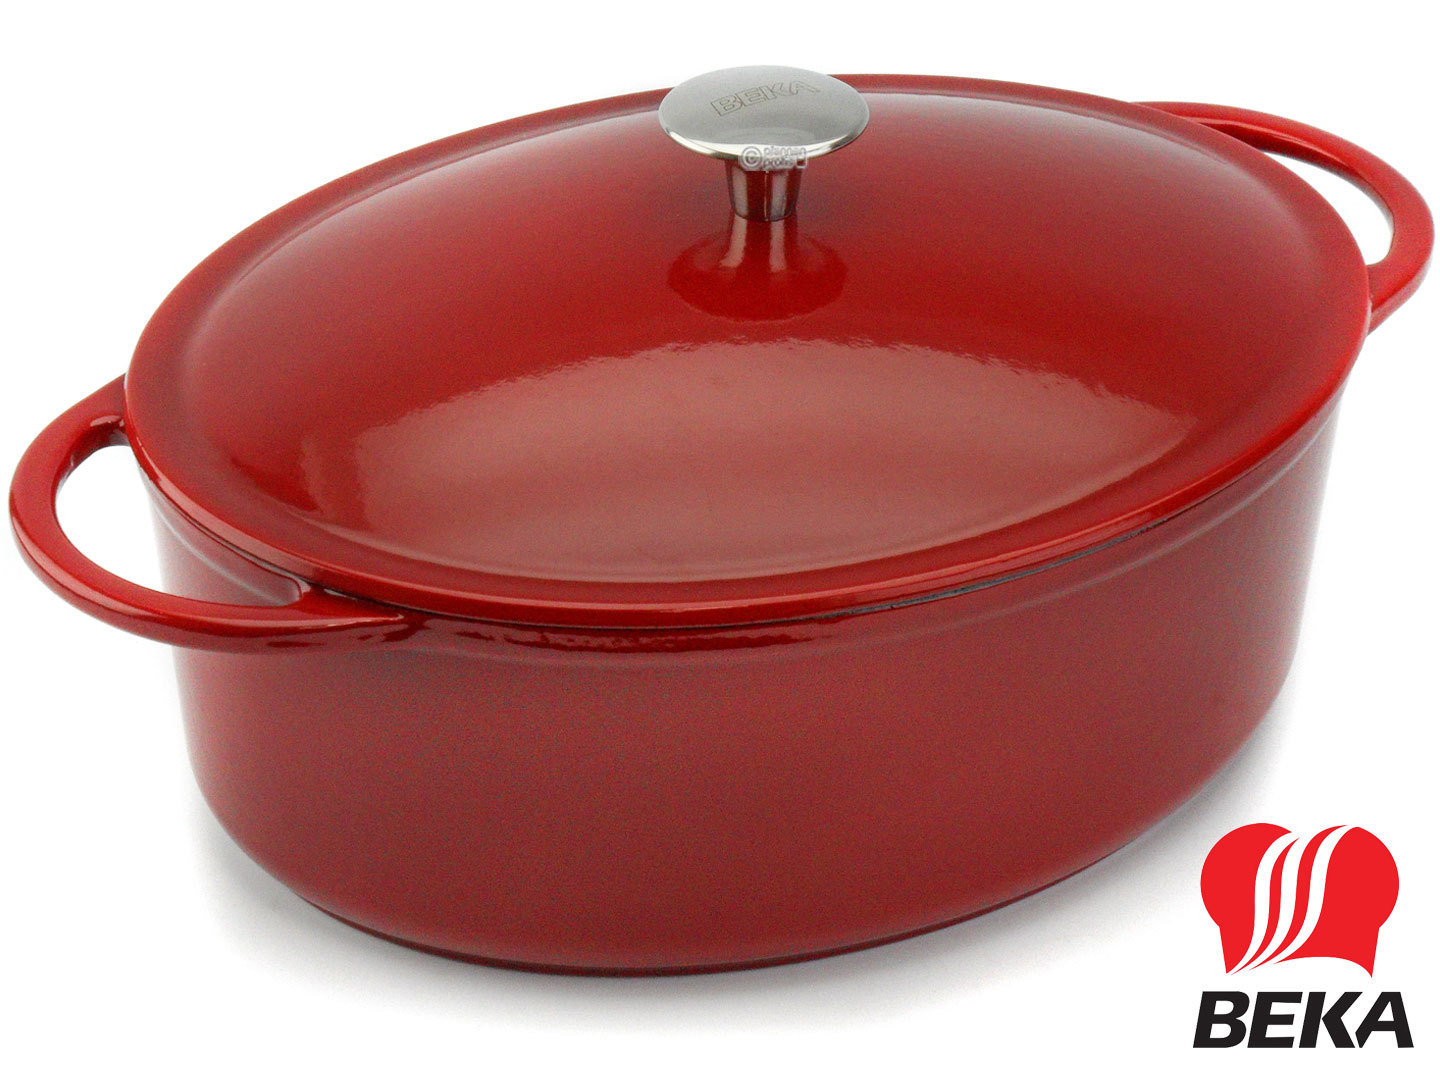 BEKA oval cast iron casserole AROME 34 cm with lid enameled red cream